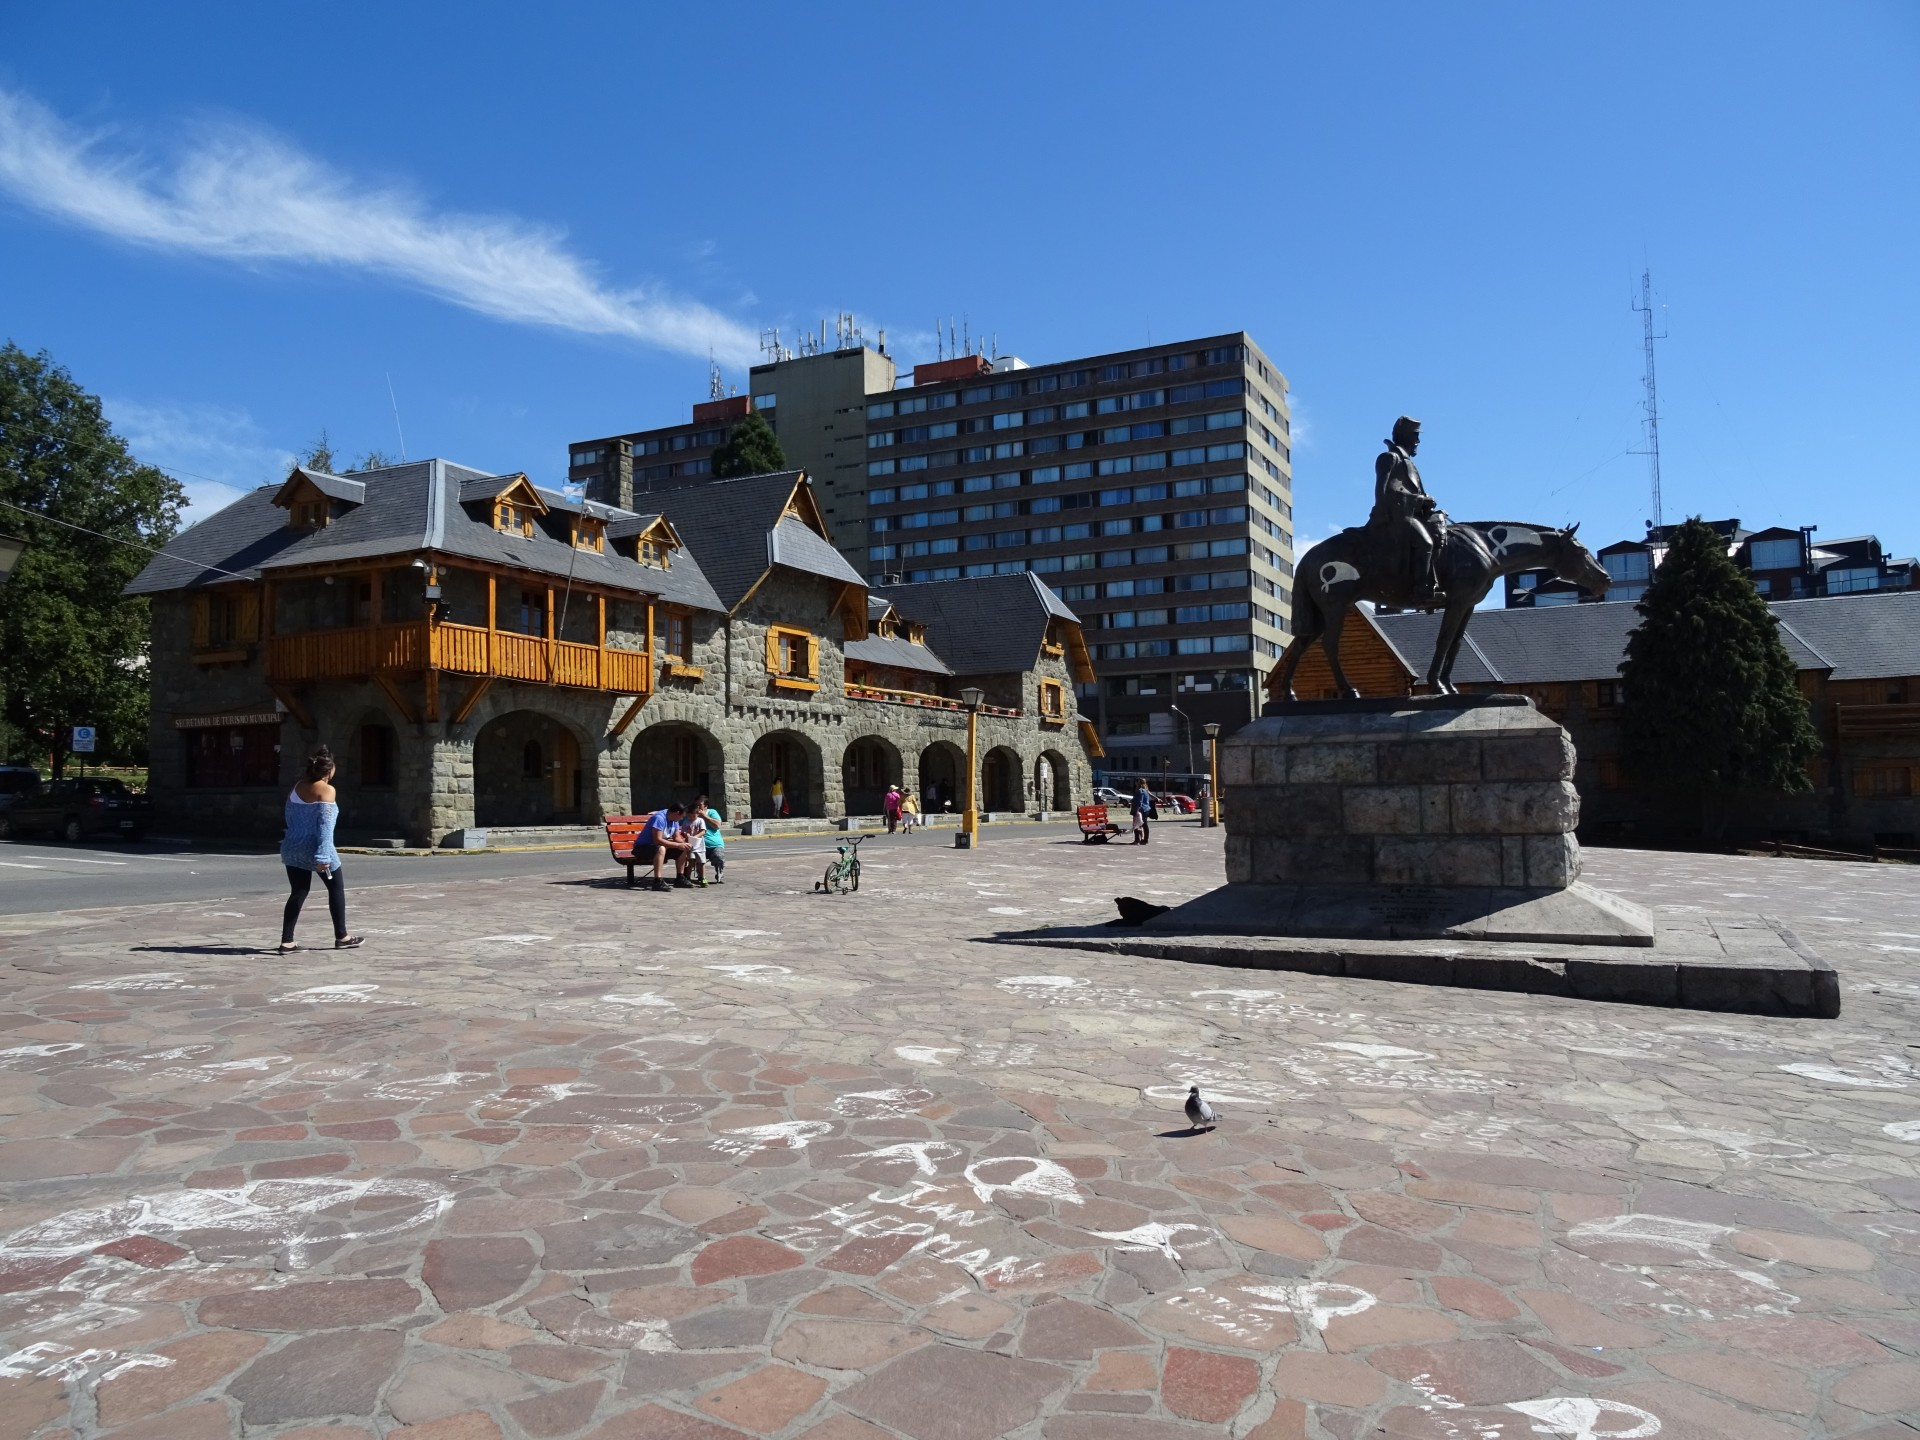 Central Bariloche is pretty nice.